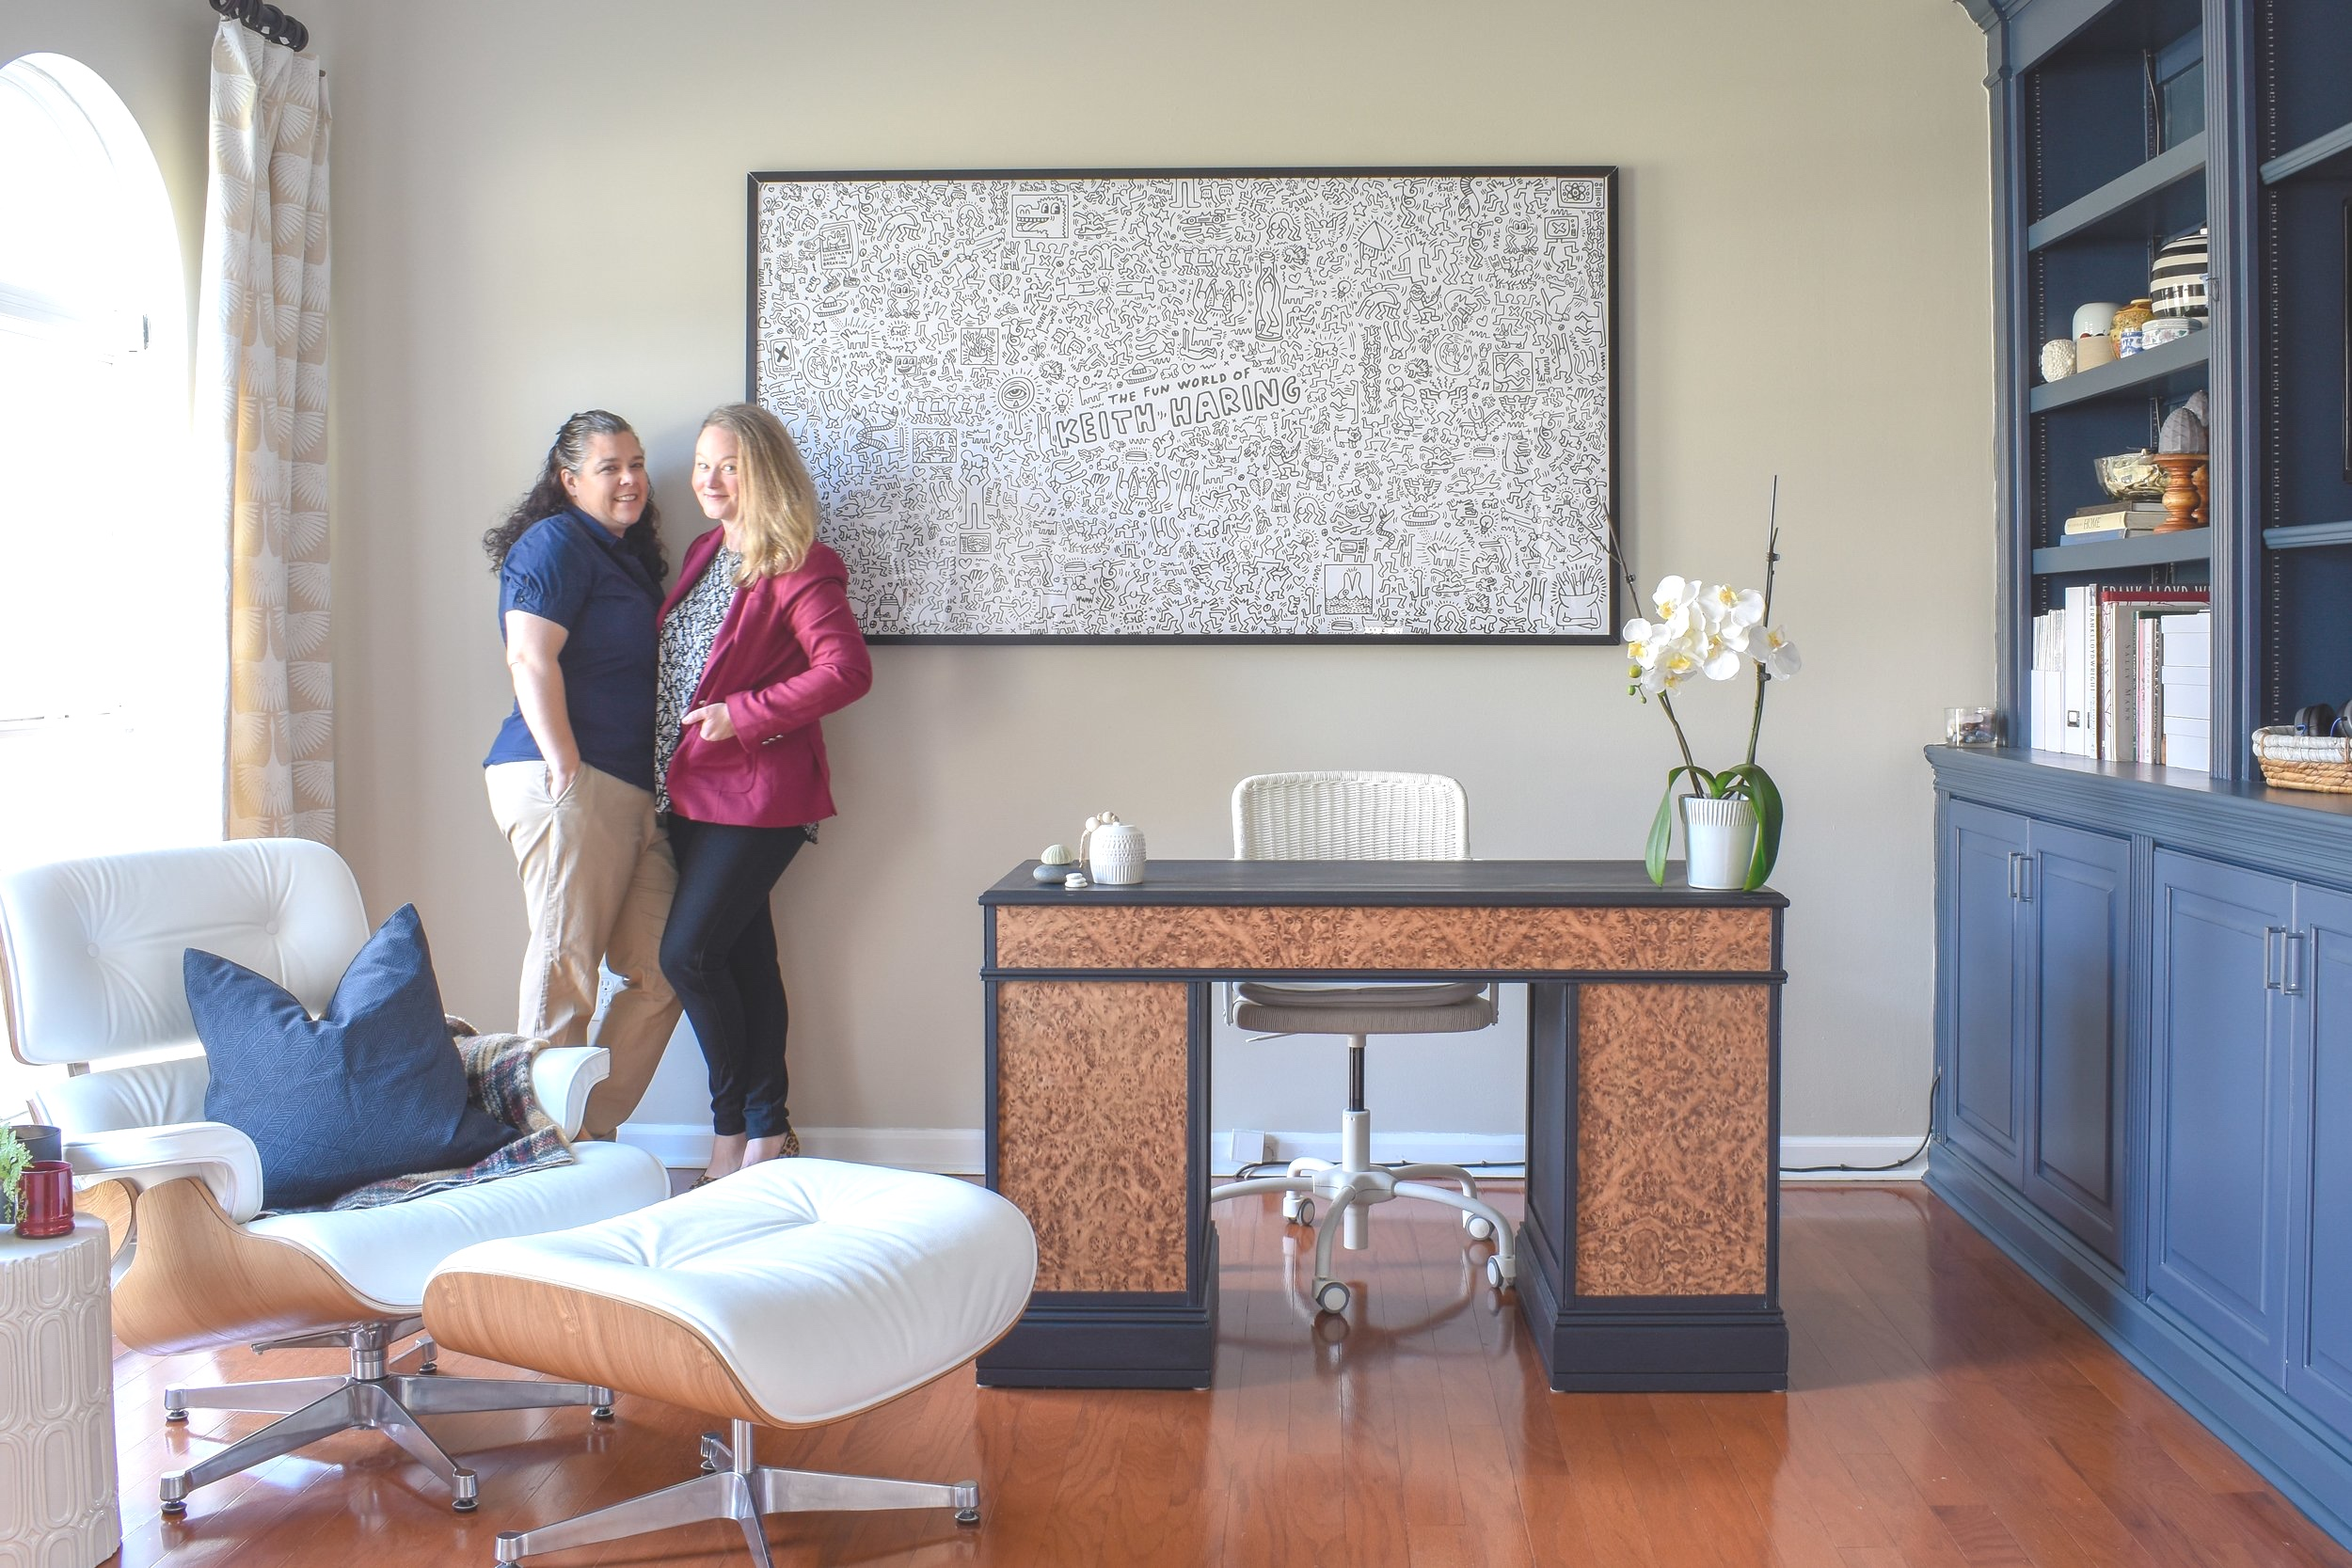 Shared Home Office: Blending our two decor styles for a space that works for a couple with different tastes